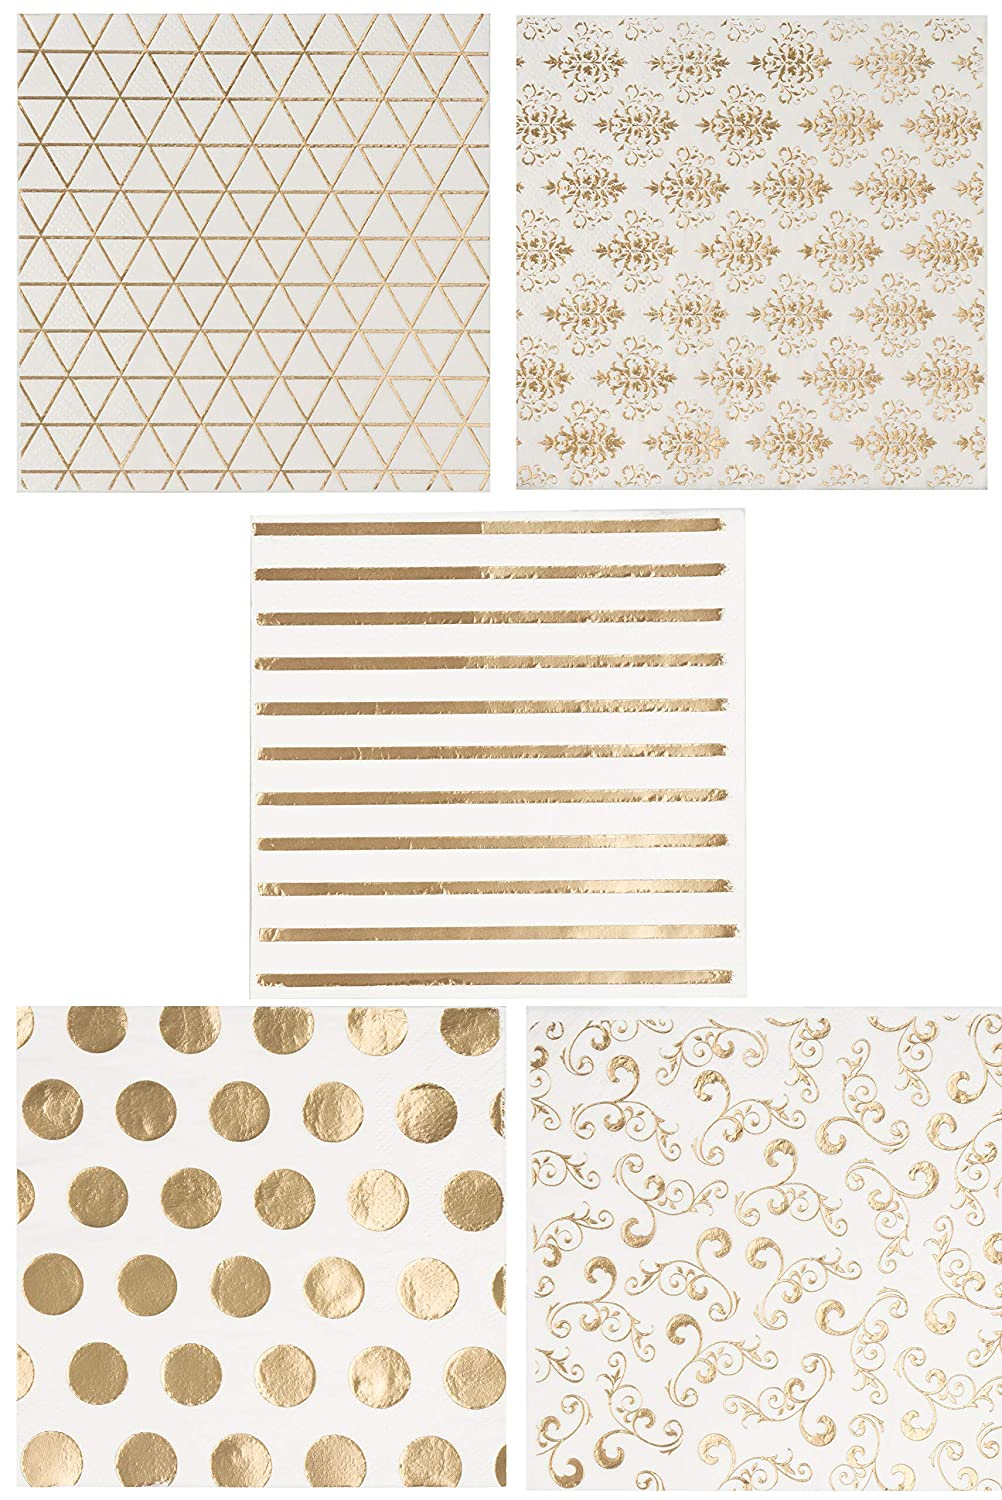 Cocktail Napkins - 100-Pack Luncheon Napkins, Disposable Paper Napkins Party Supplies, 3-Ply, 5 Assorted Gold Foil Print Designs, Unfolded 10 x 10 Inches, Folded 5 x 5 Inches